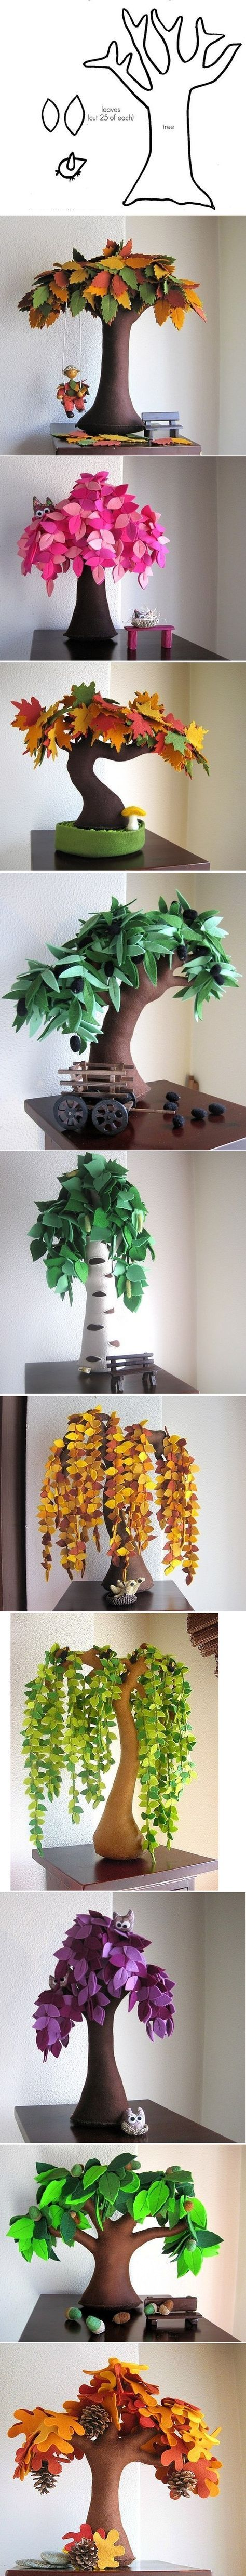 Felt Trees Are Almost Too Cute For Words | The WHOot